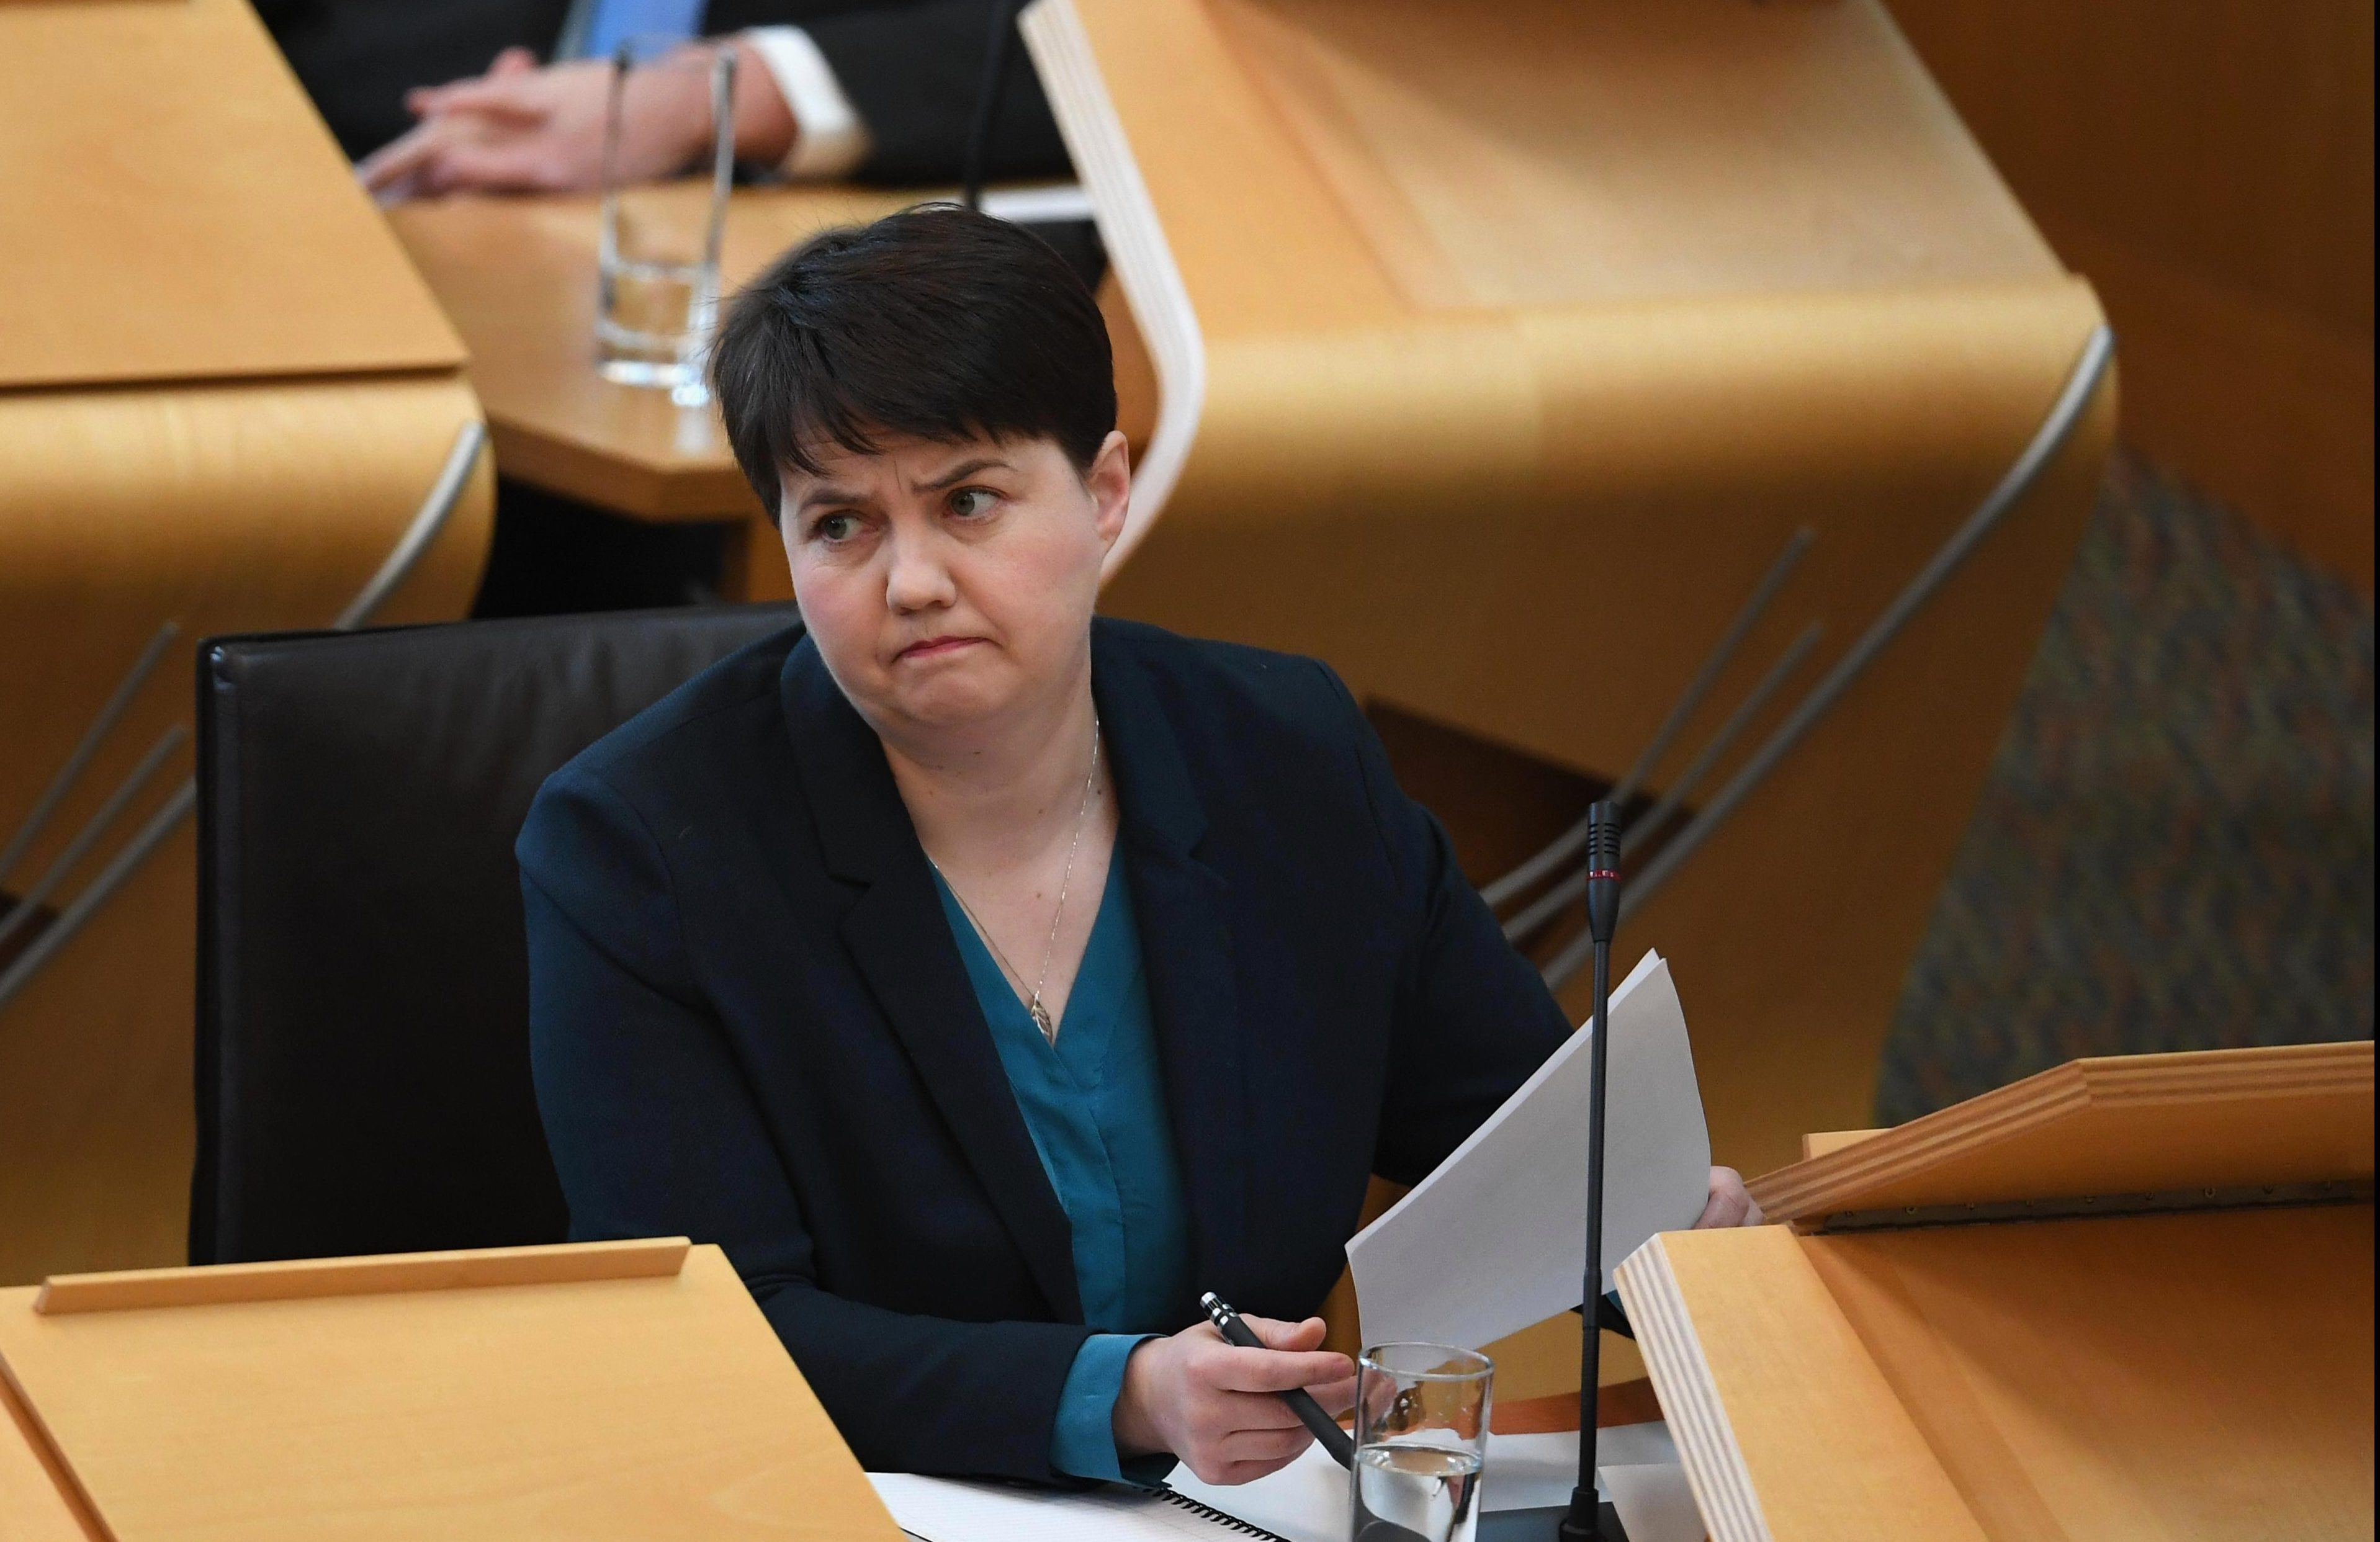 Ruth Davidson urges Oxfam chief exec Mark Goldring to quit or 'understand charities wrongdoing'